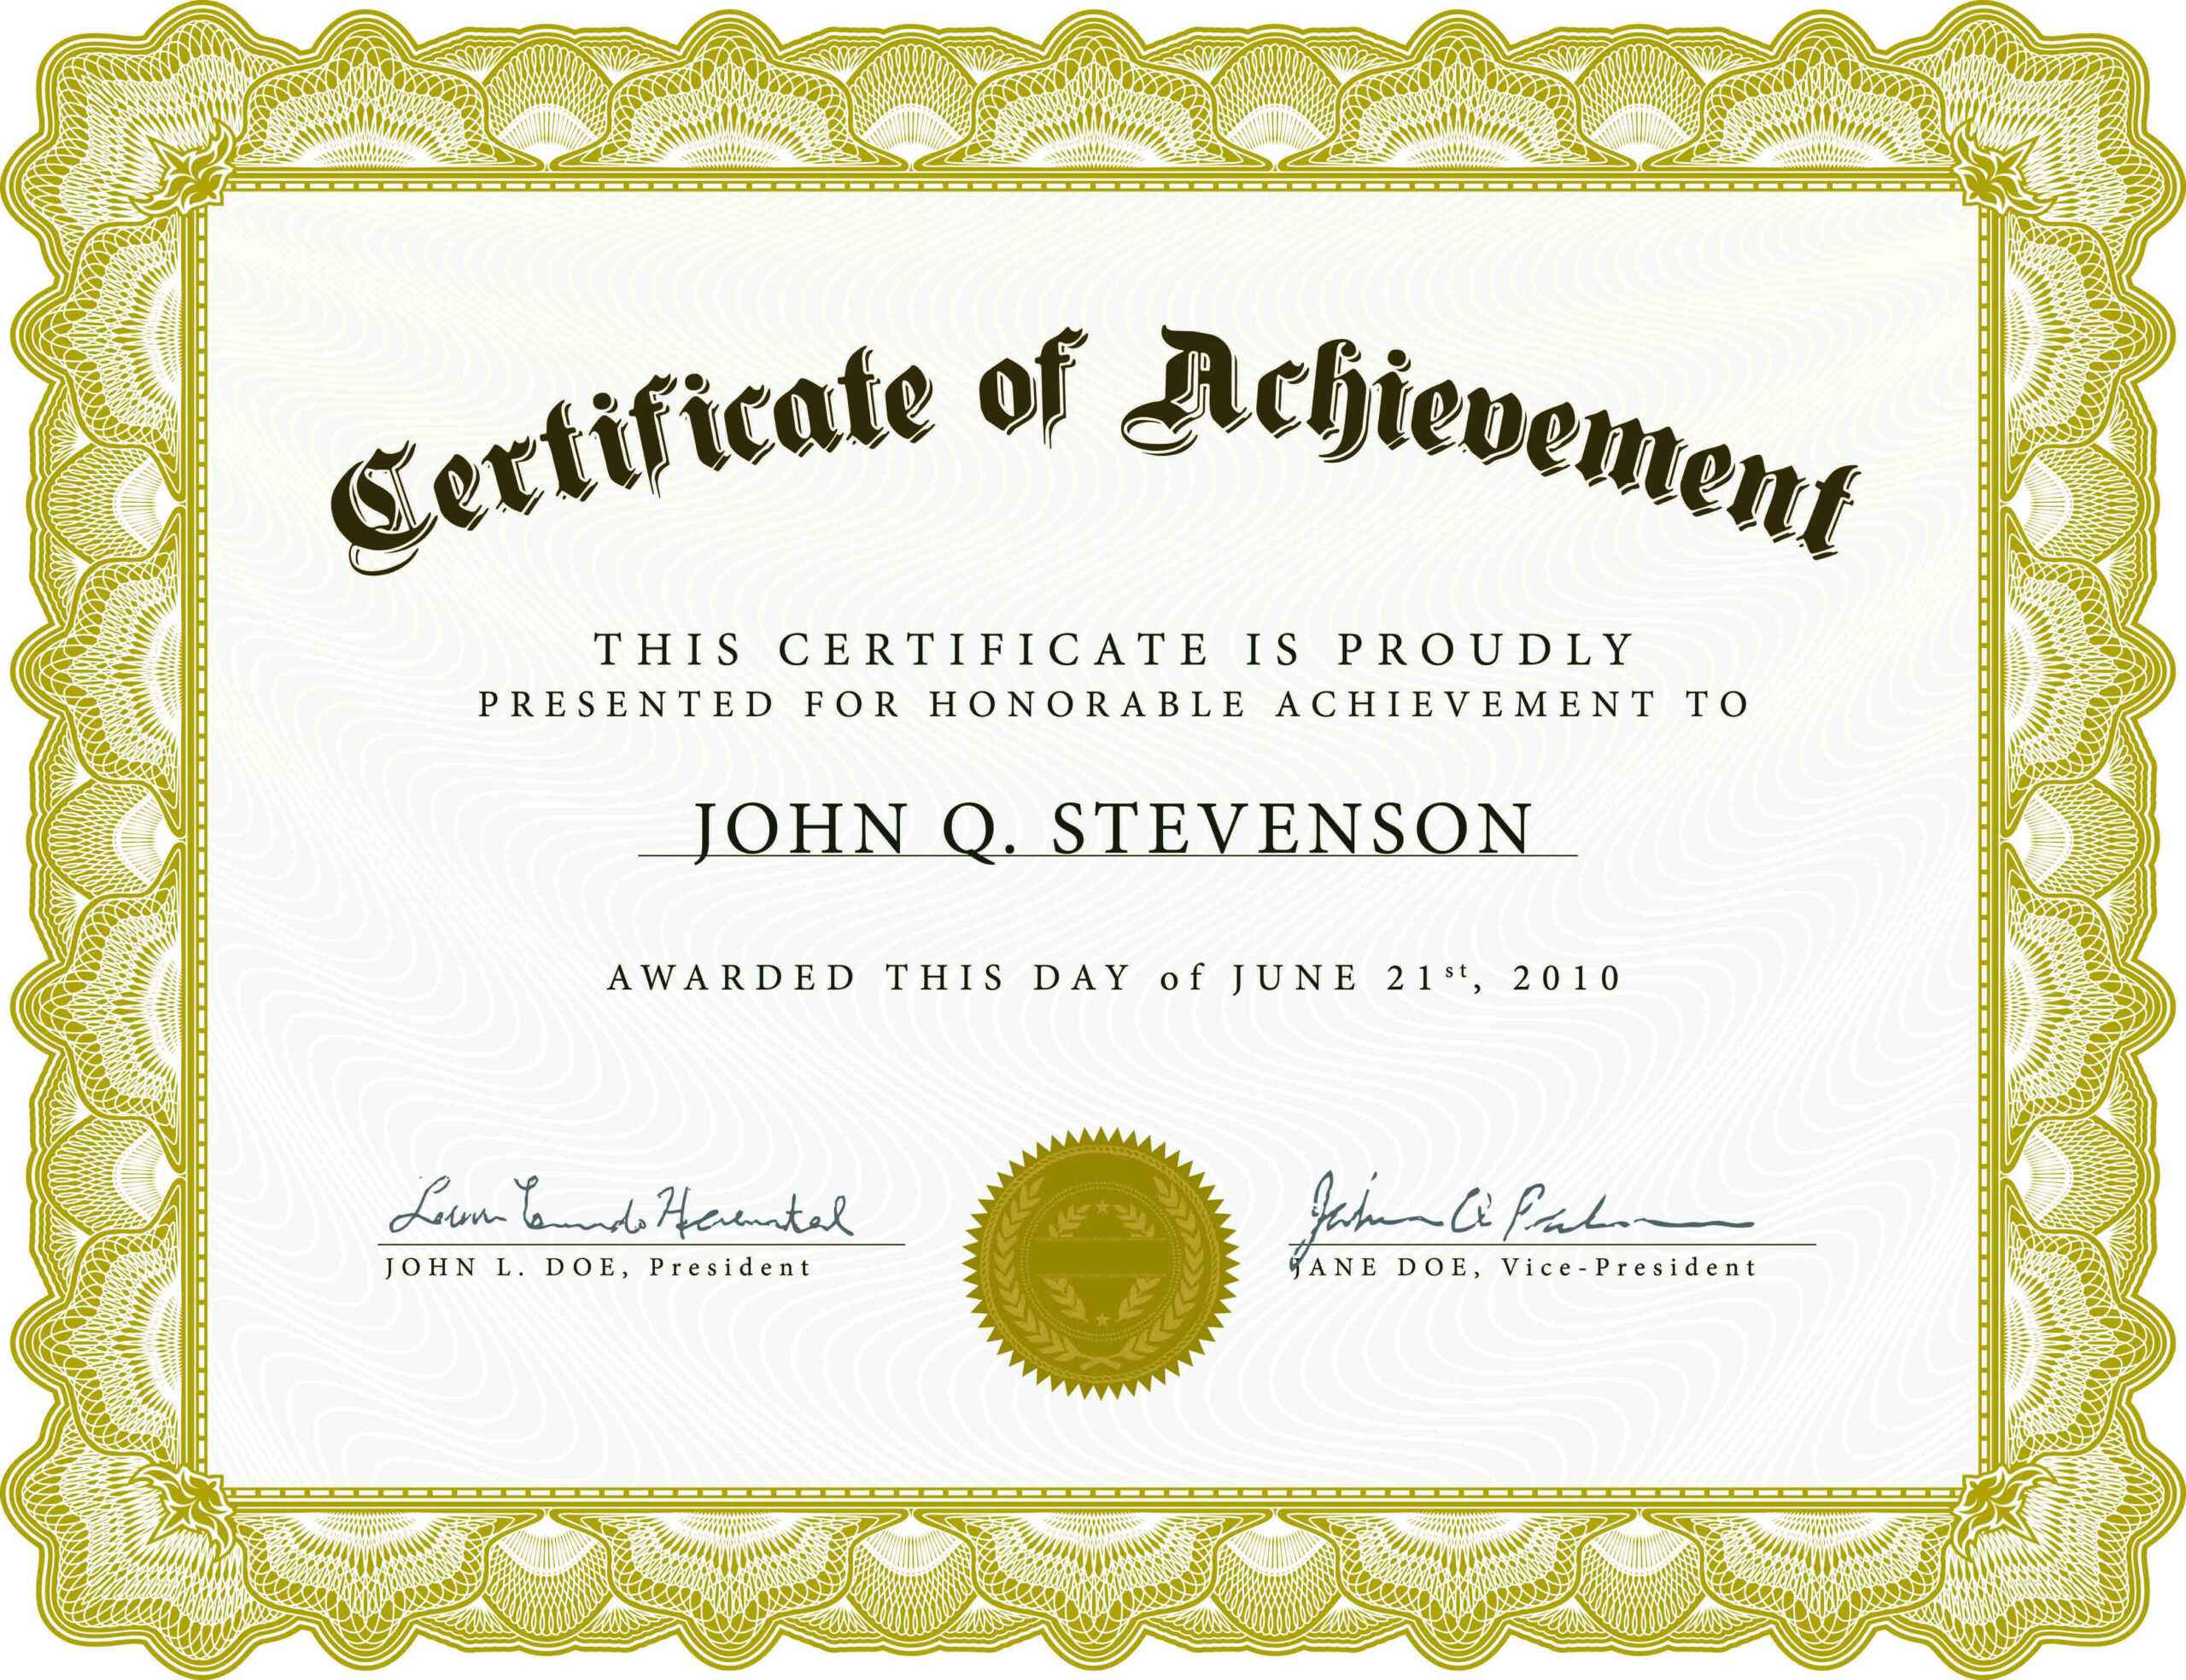 002 Word Certificate Of Achievement Template Outstanding With Army Certificate Of Achievement Template